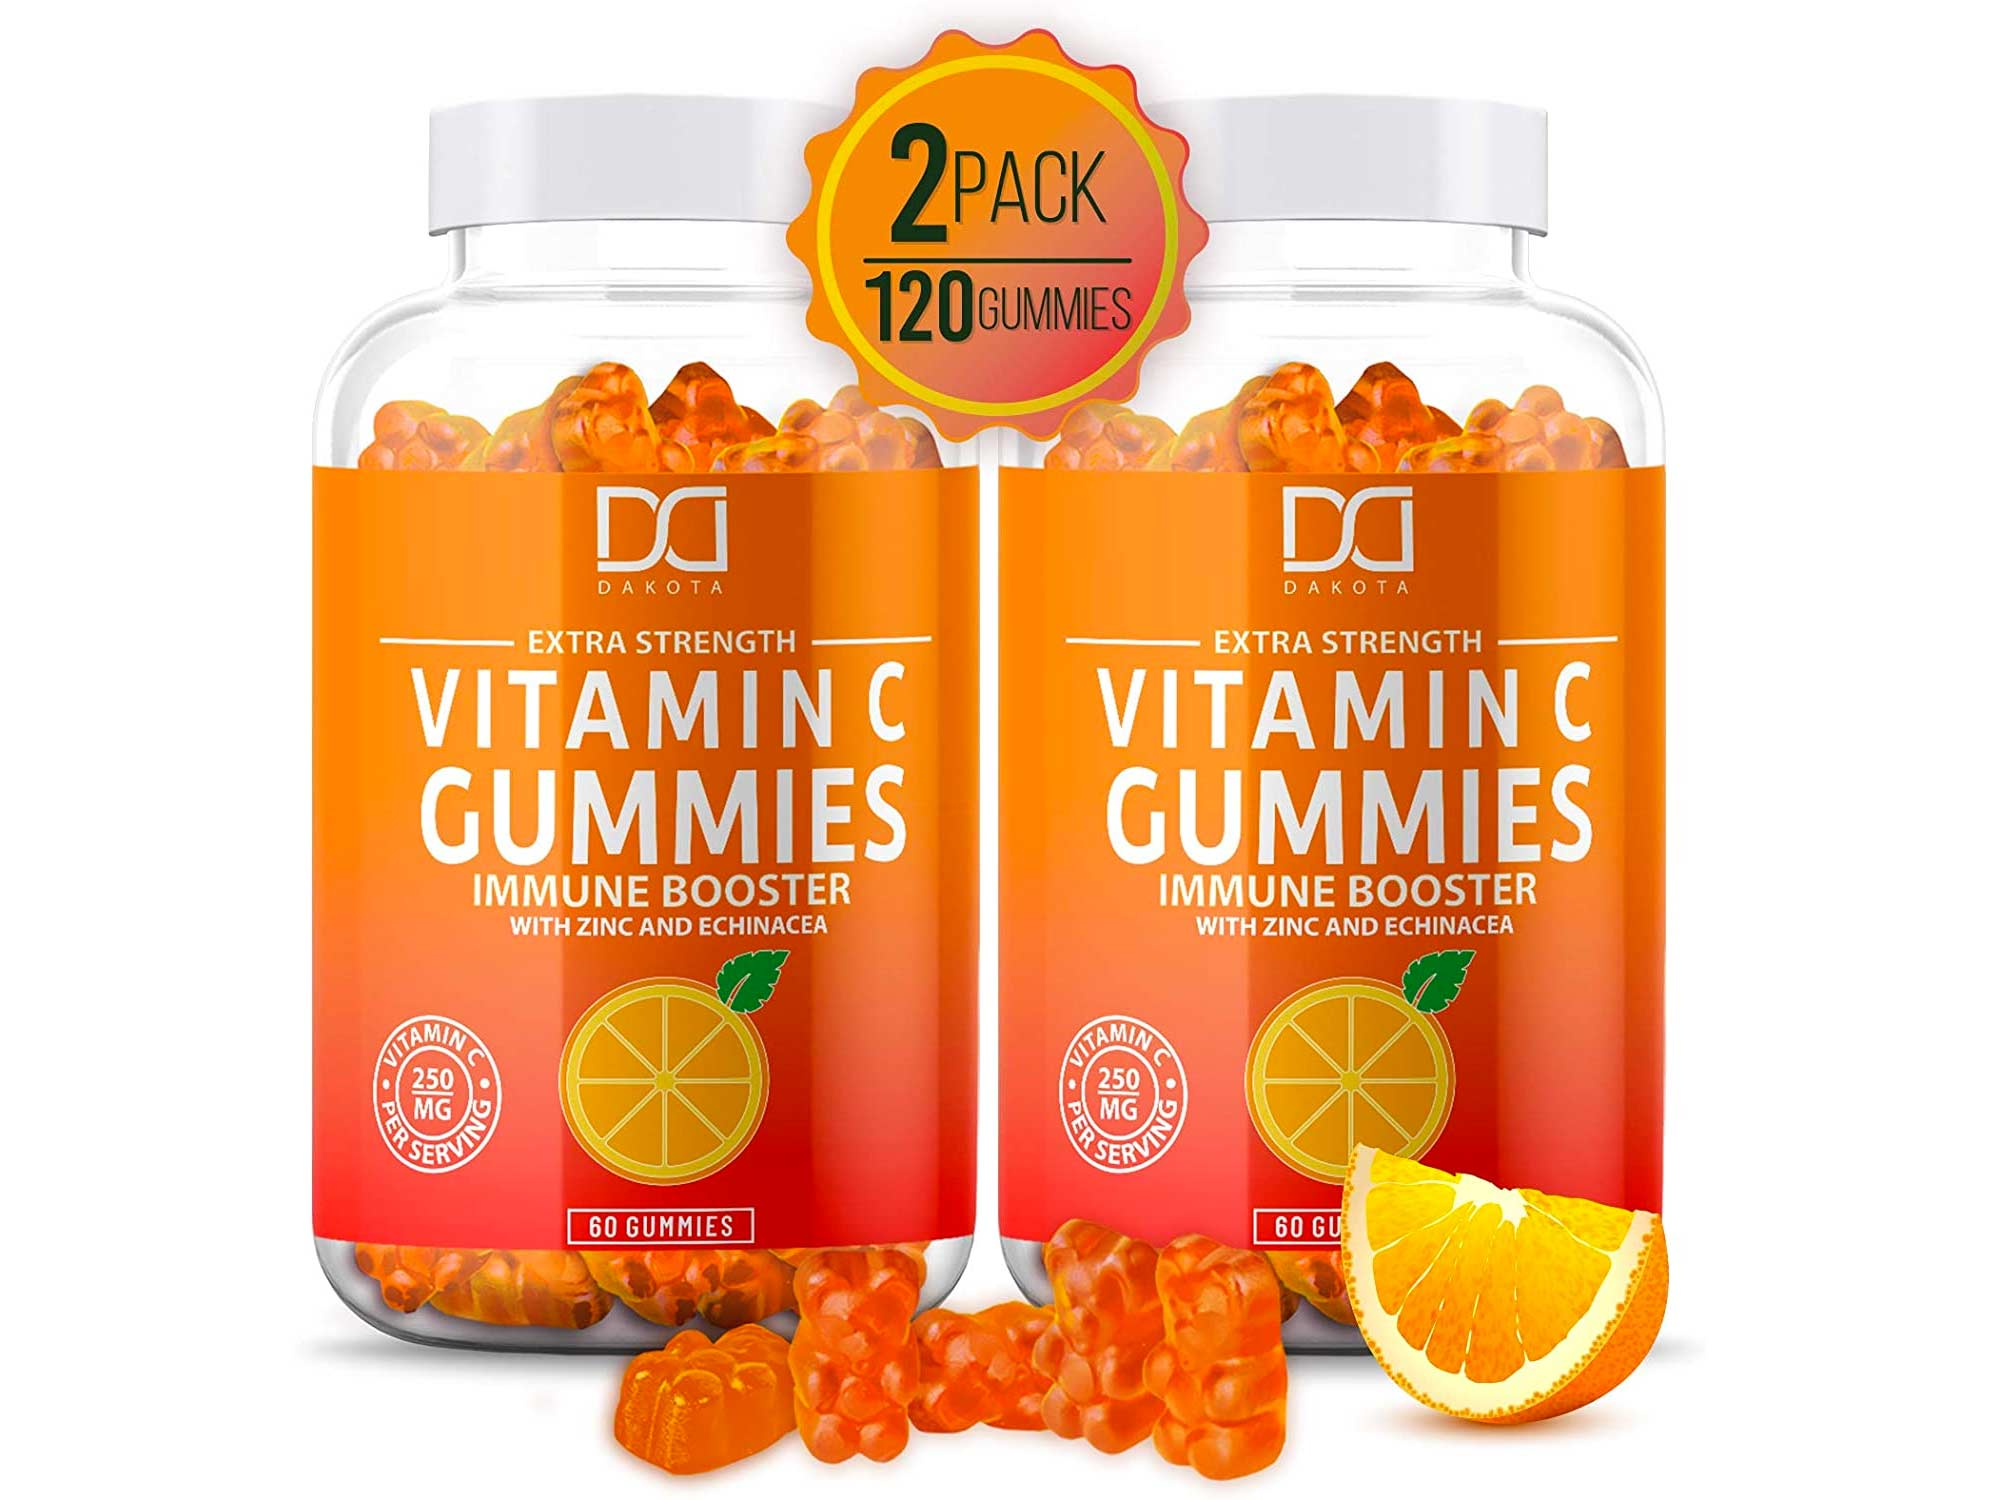 Vitamin C Gummies with Zinc for Immune Support Booster Supplement for Adults Kids, Immunity Support System